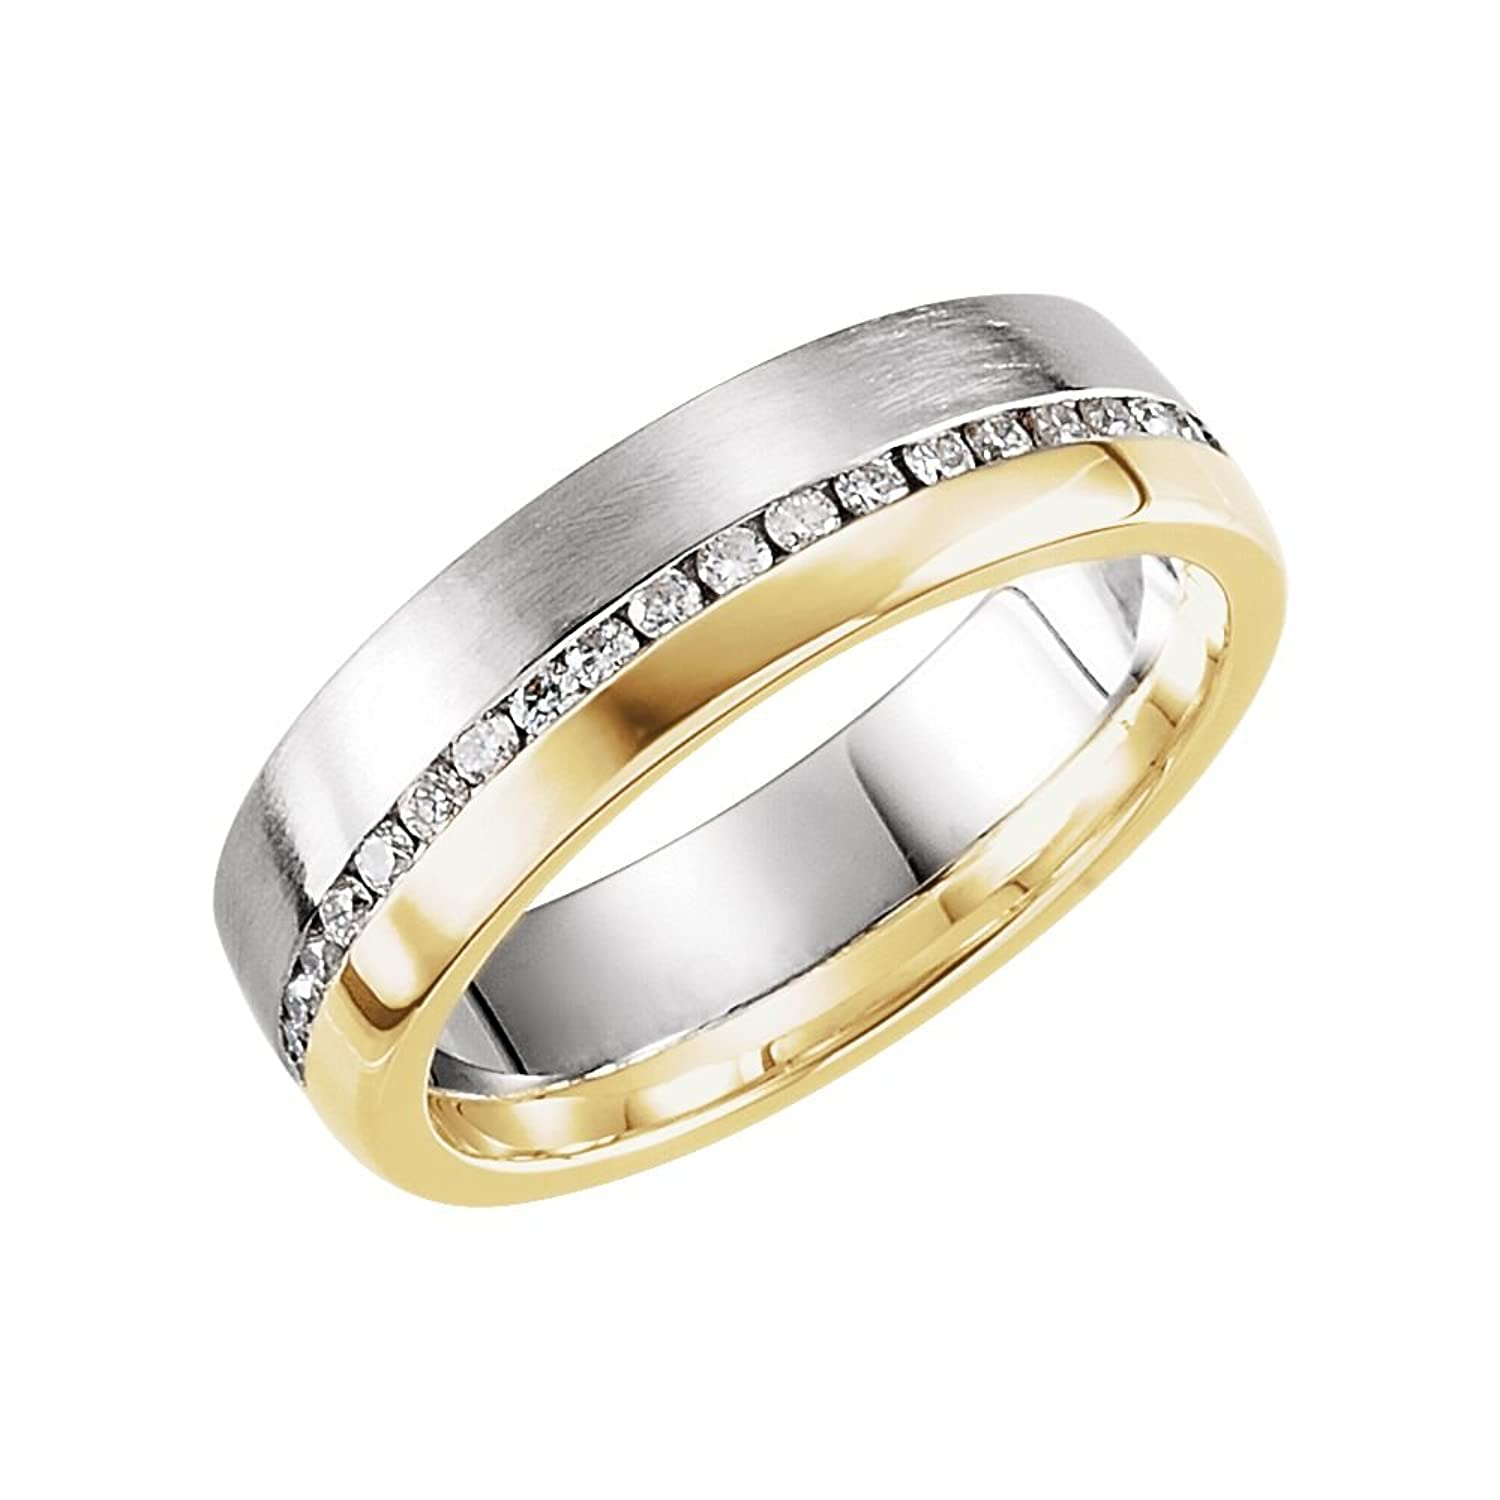 14k Two-Tone Gold (White/Yellow) Comfort-Fit 6mm 1/3 Ct Diamond Men Gents Wedding Band - Size 11